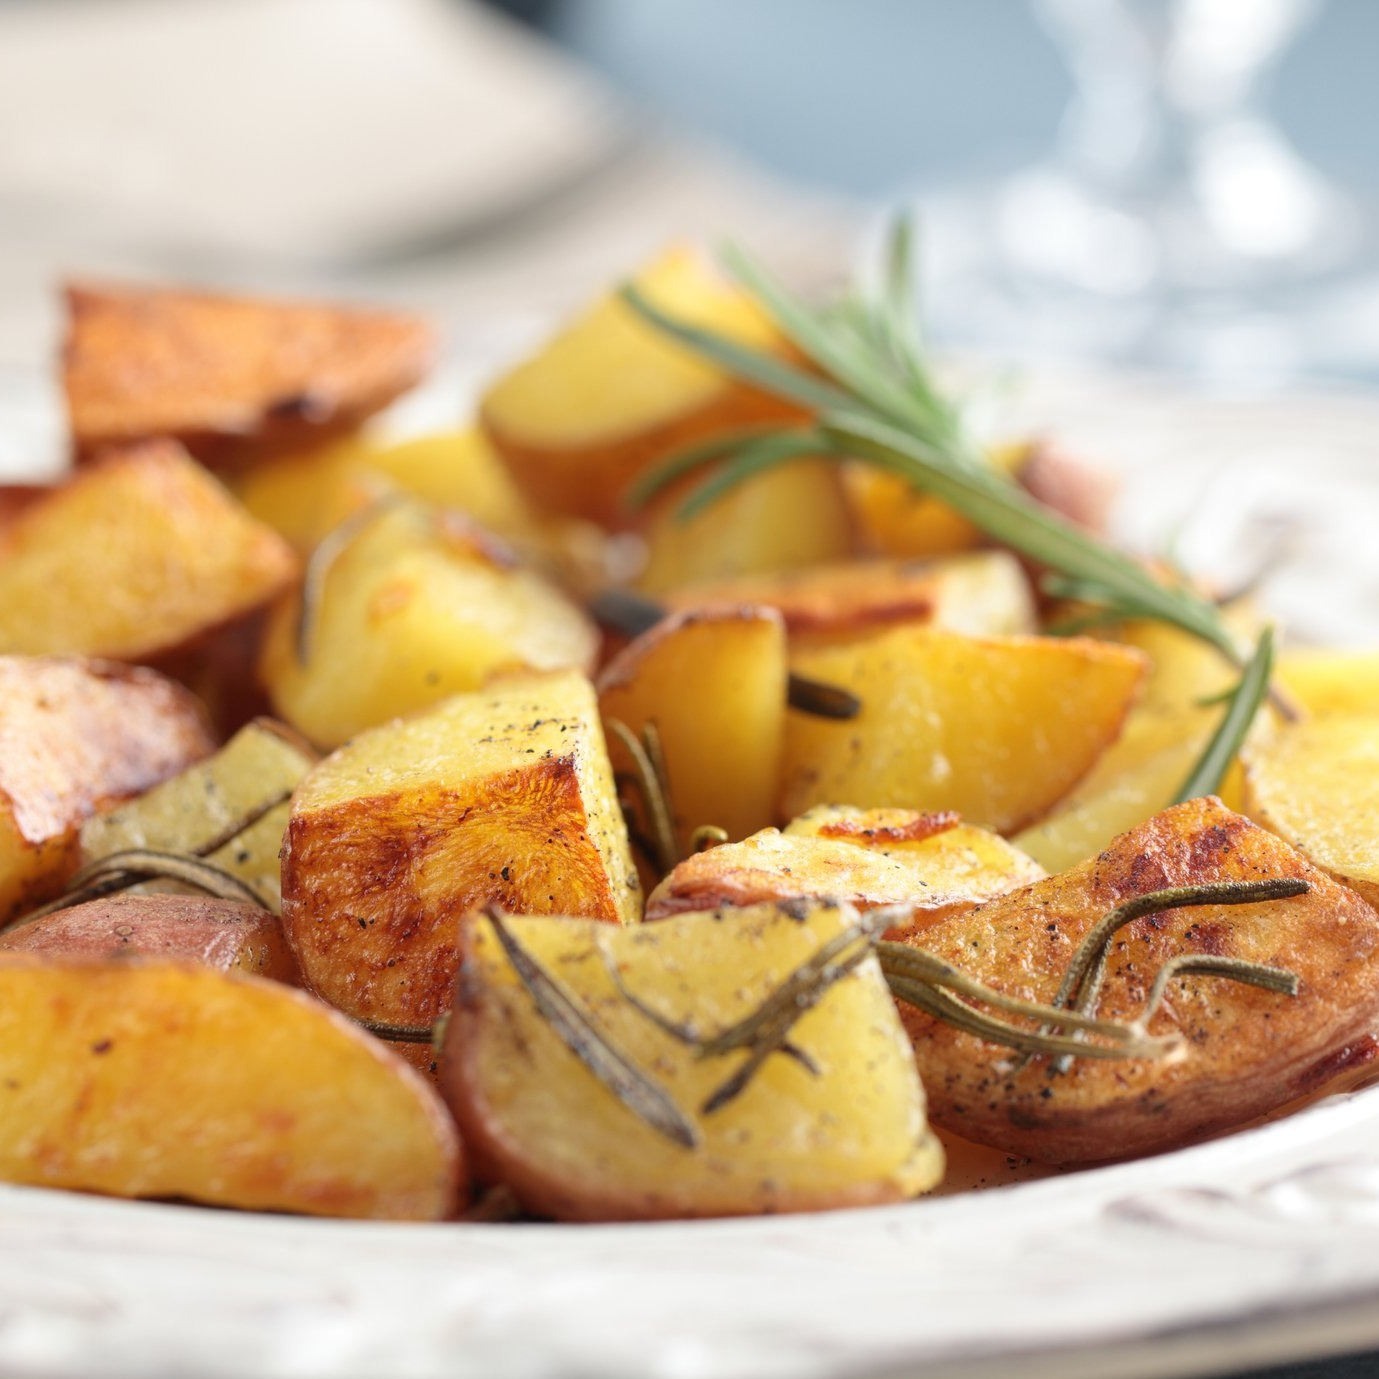 Grilled Potatoes with Rosemary and Parmesan